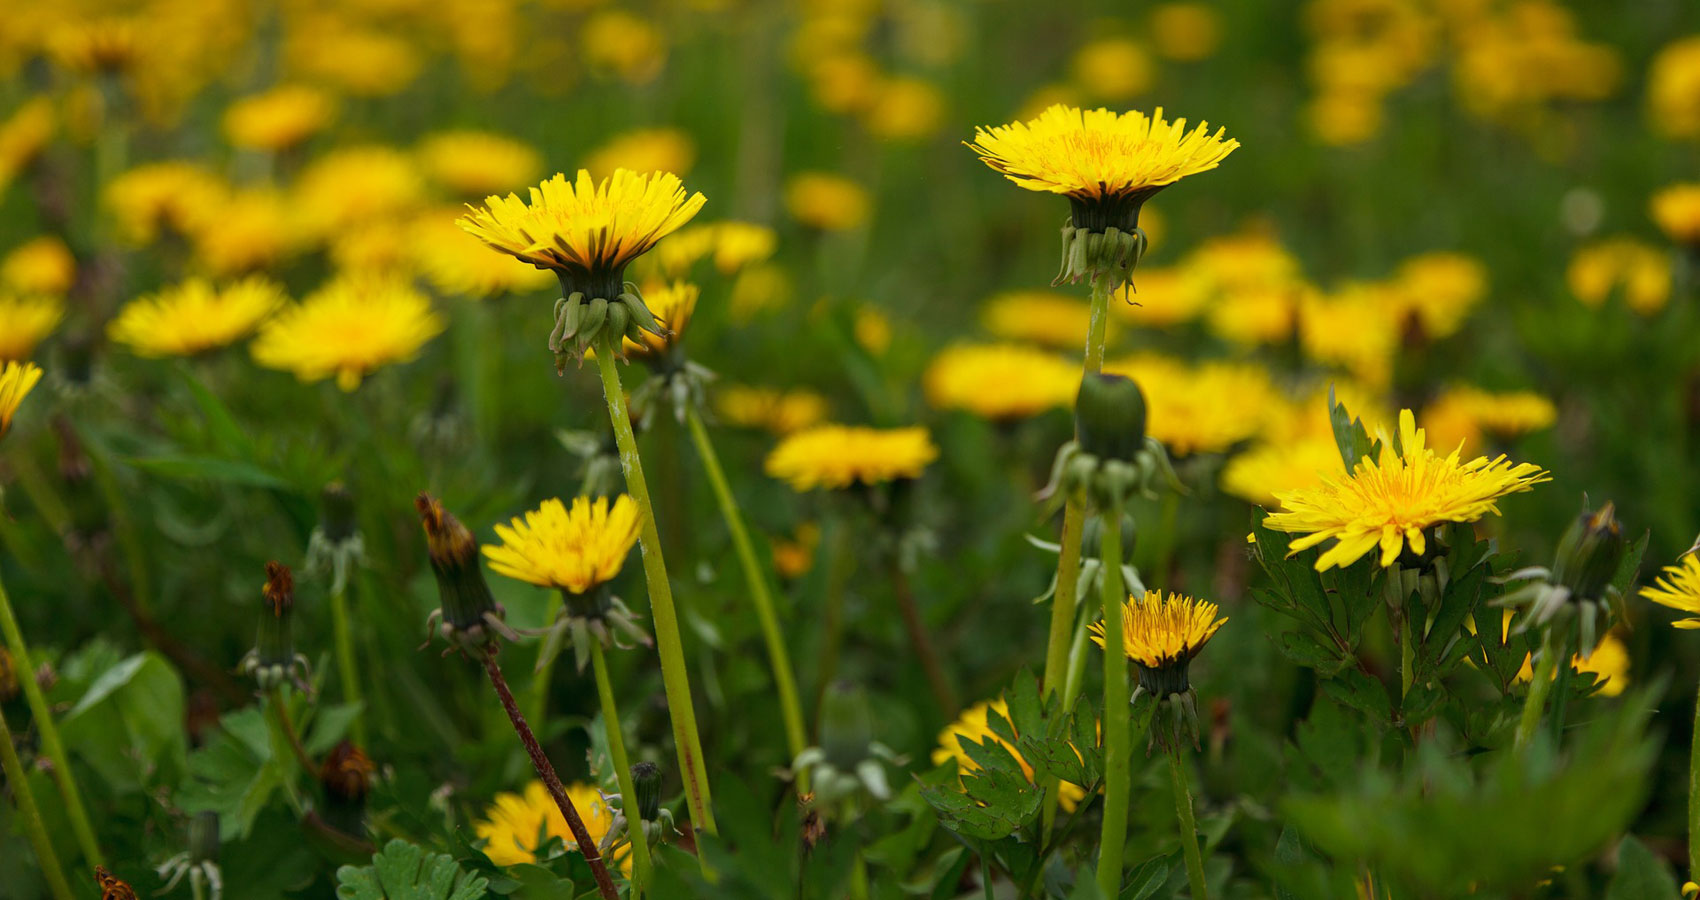 Dandelions, a short story written by Rob Gerke, Jr. at Spillwords.com